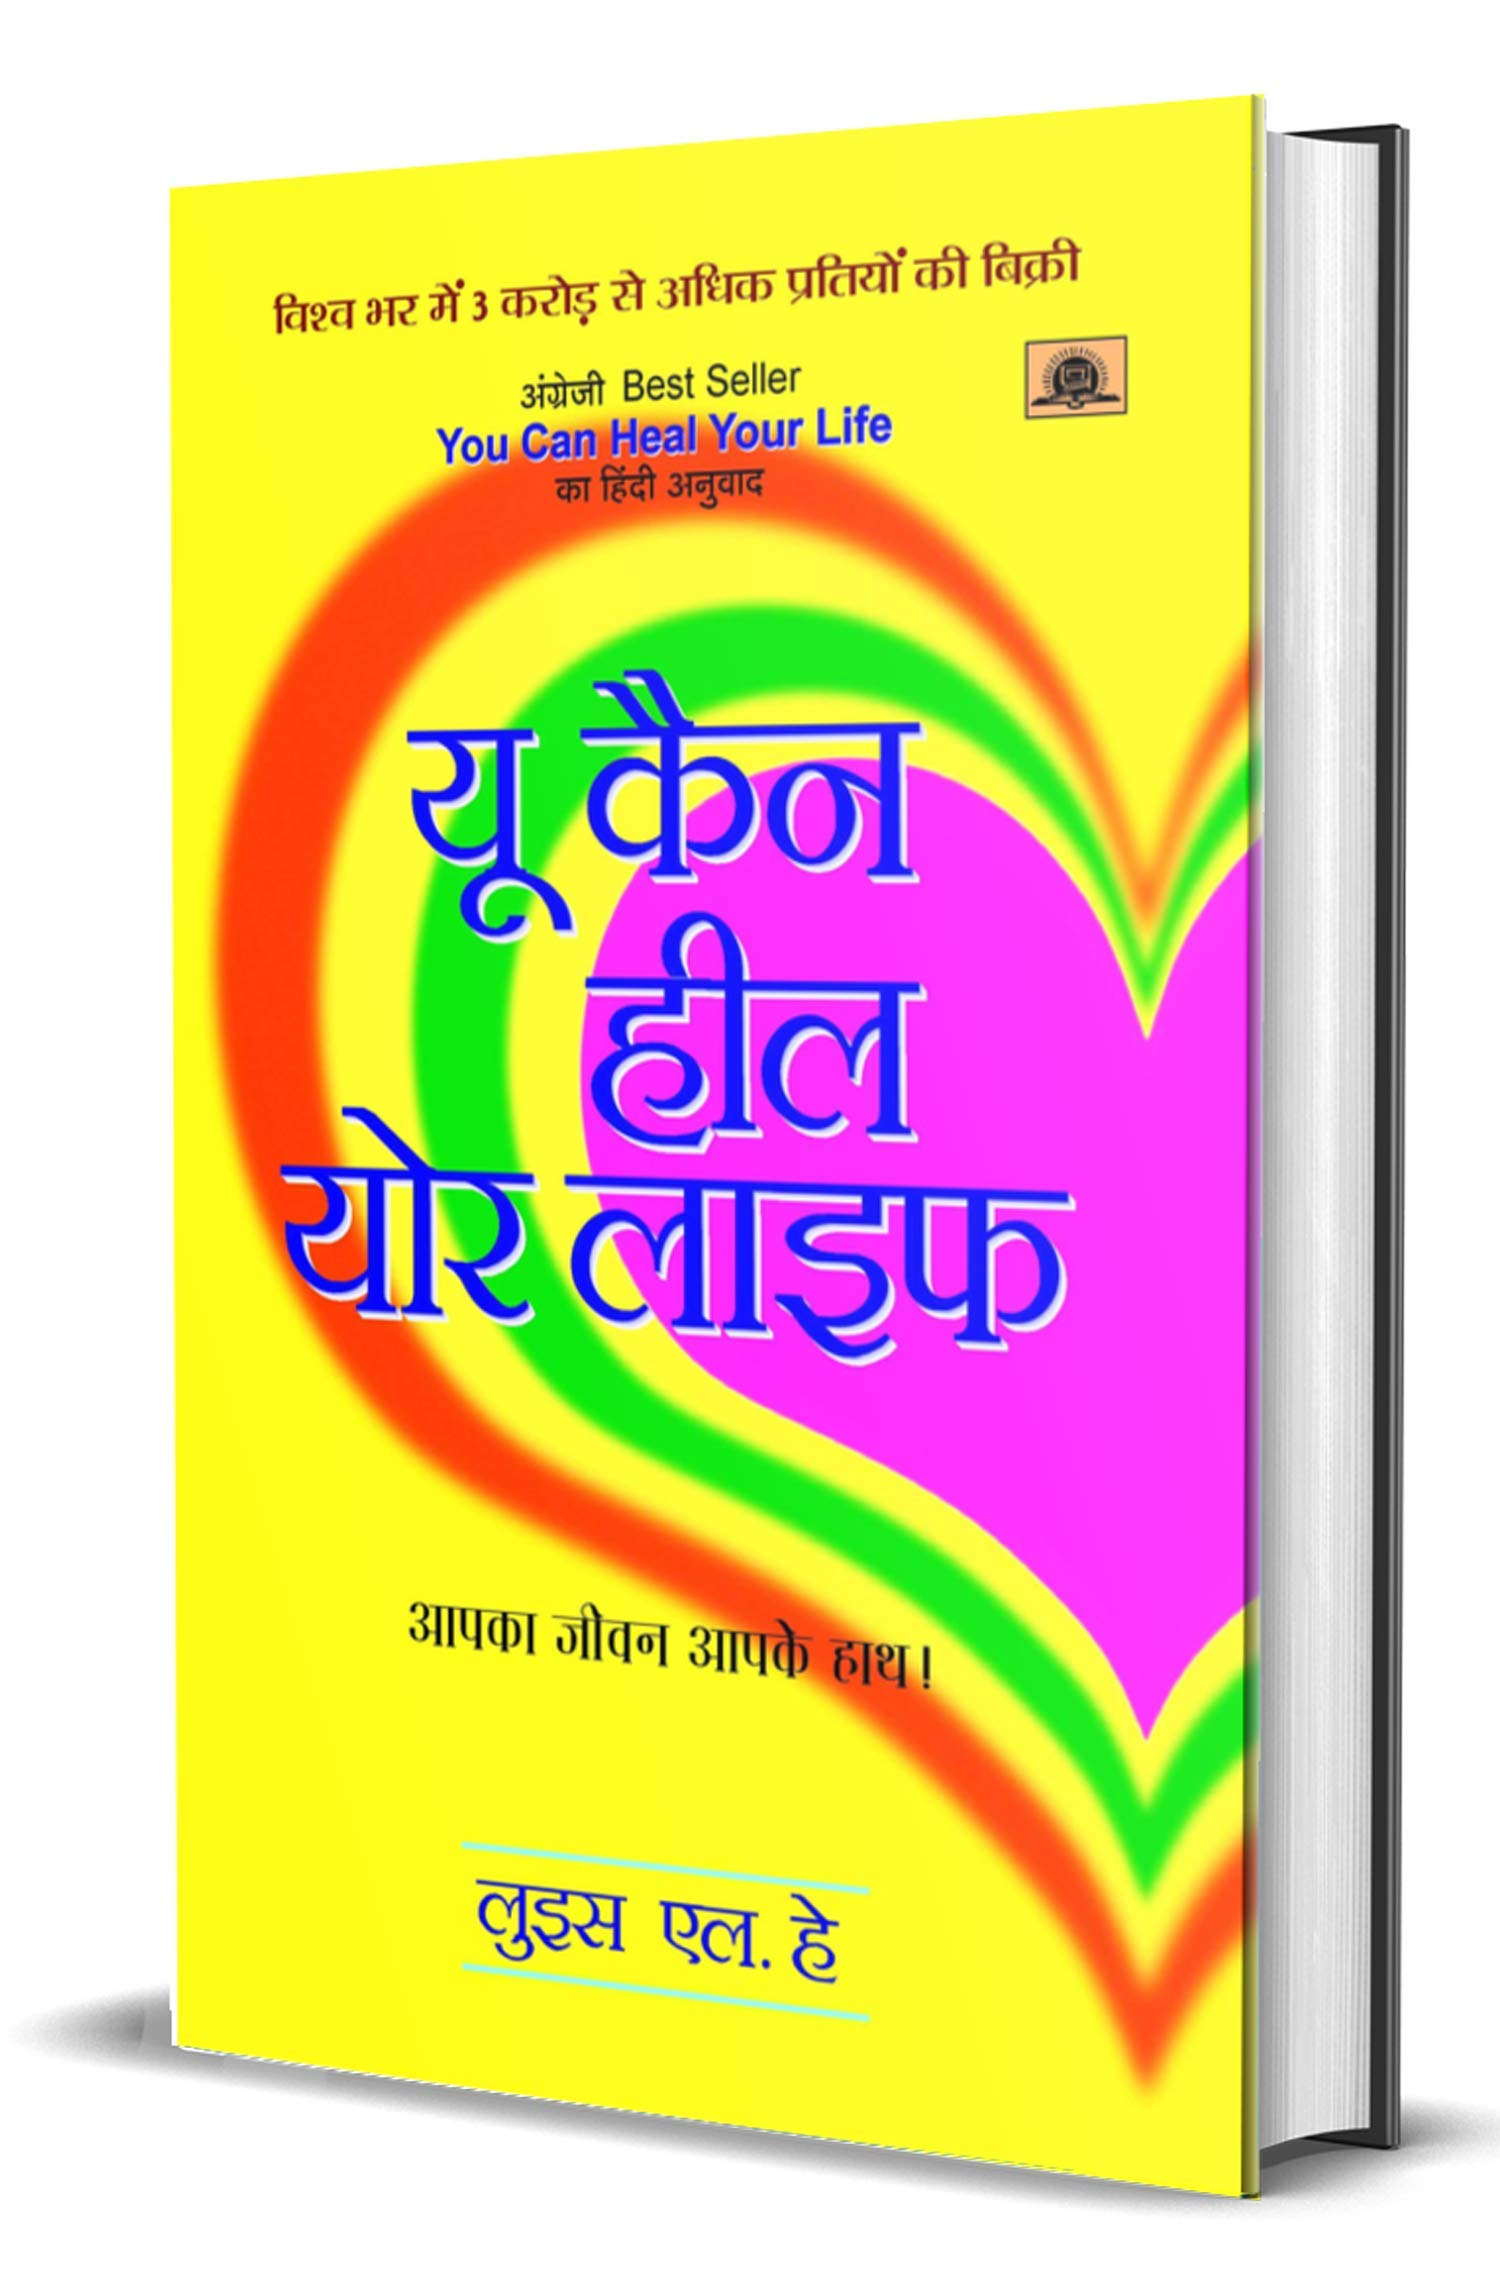 You Can Heal Your Life Pdf In Marathi